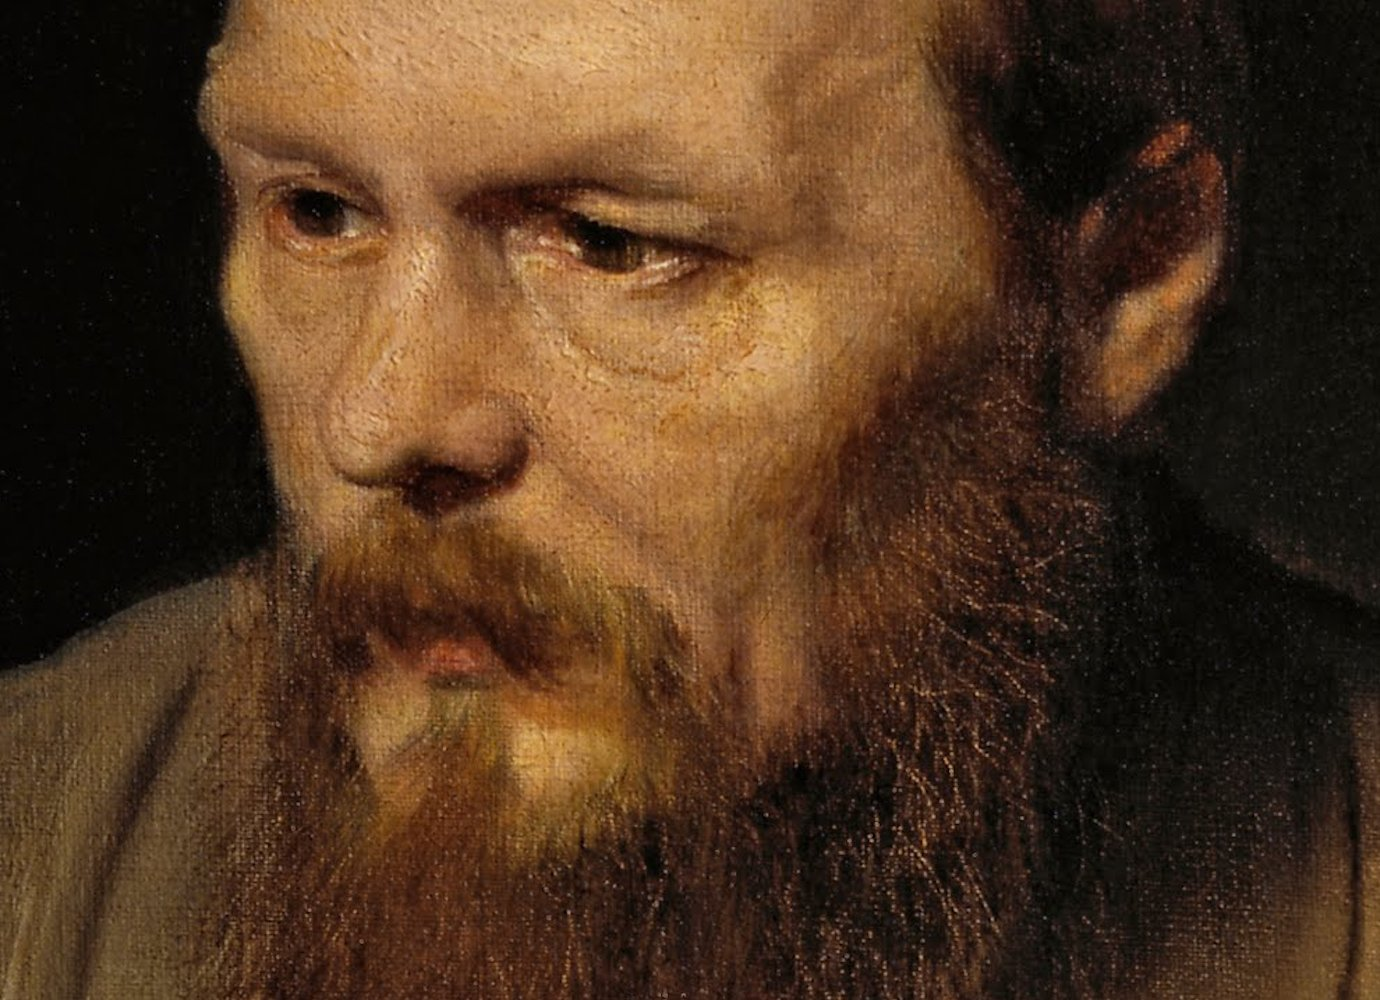 Fyodor Dostoevsky: where to start with his literature